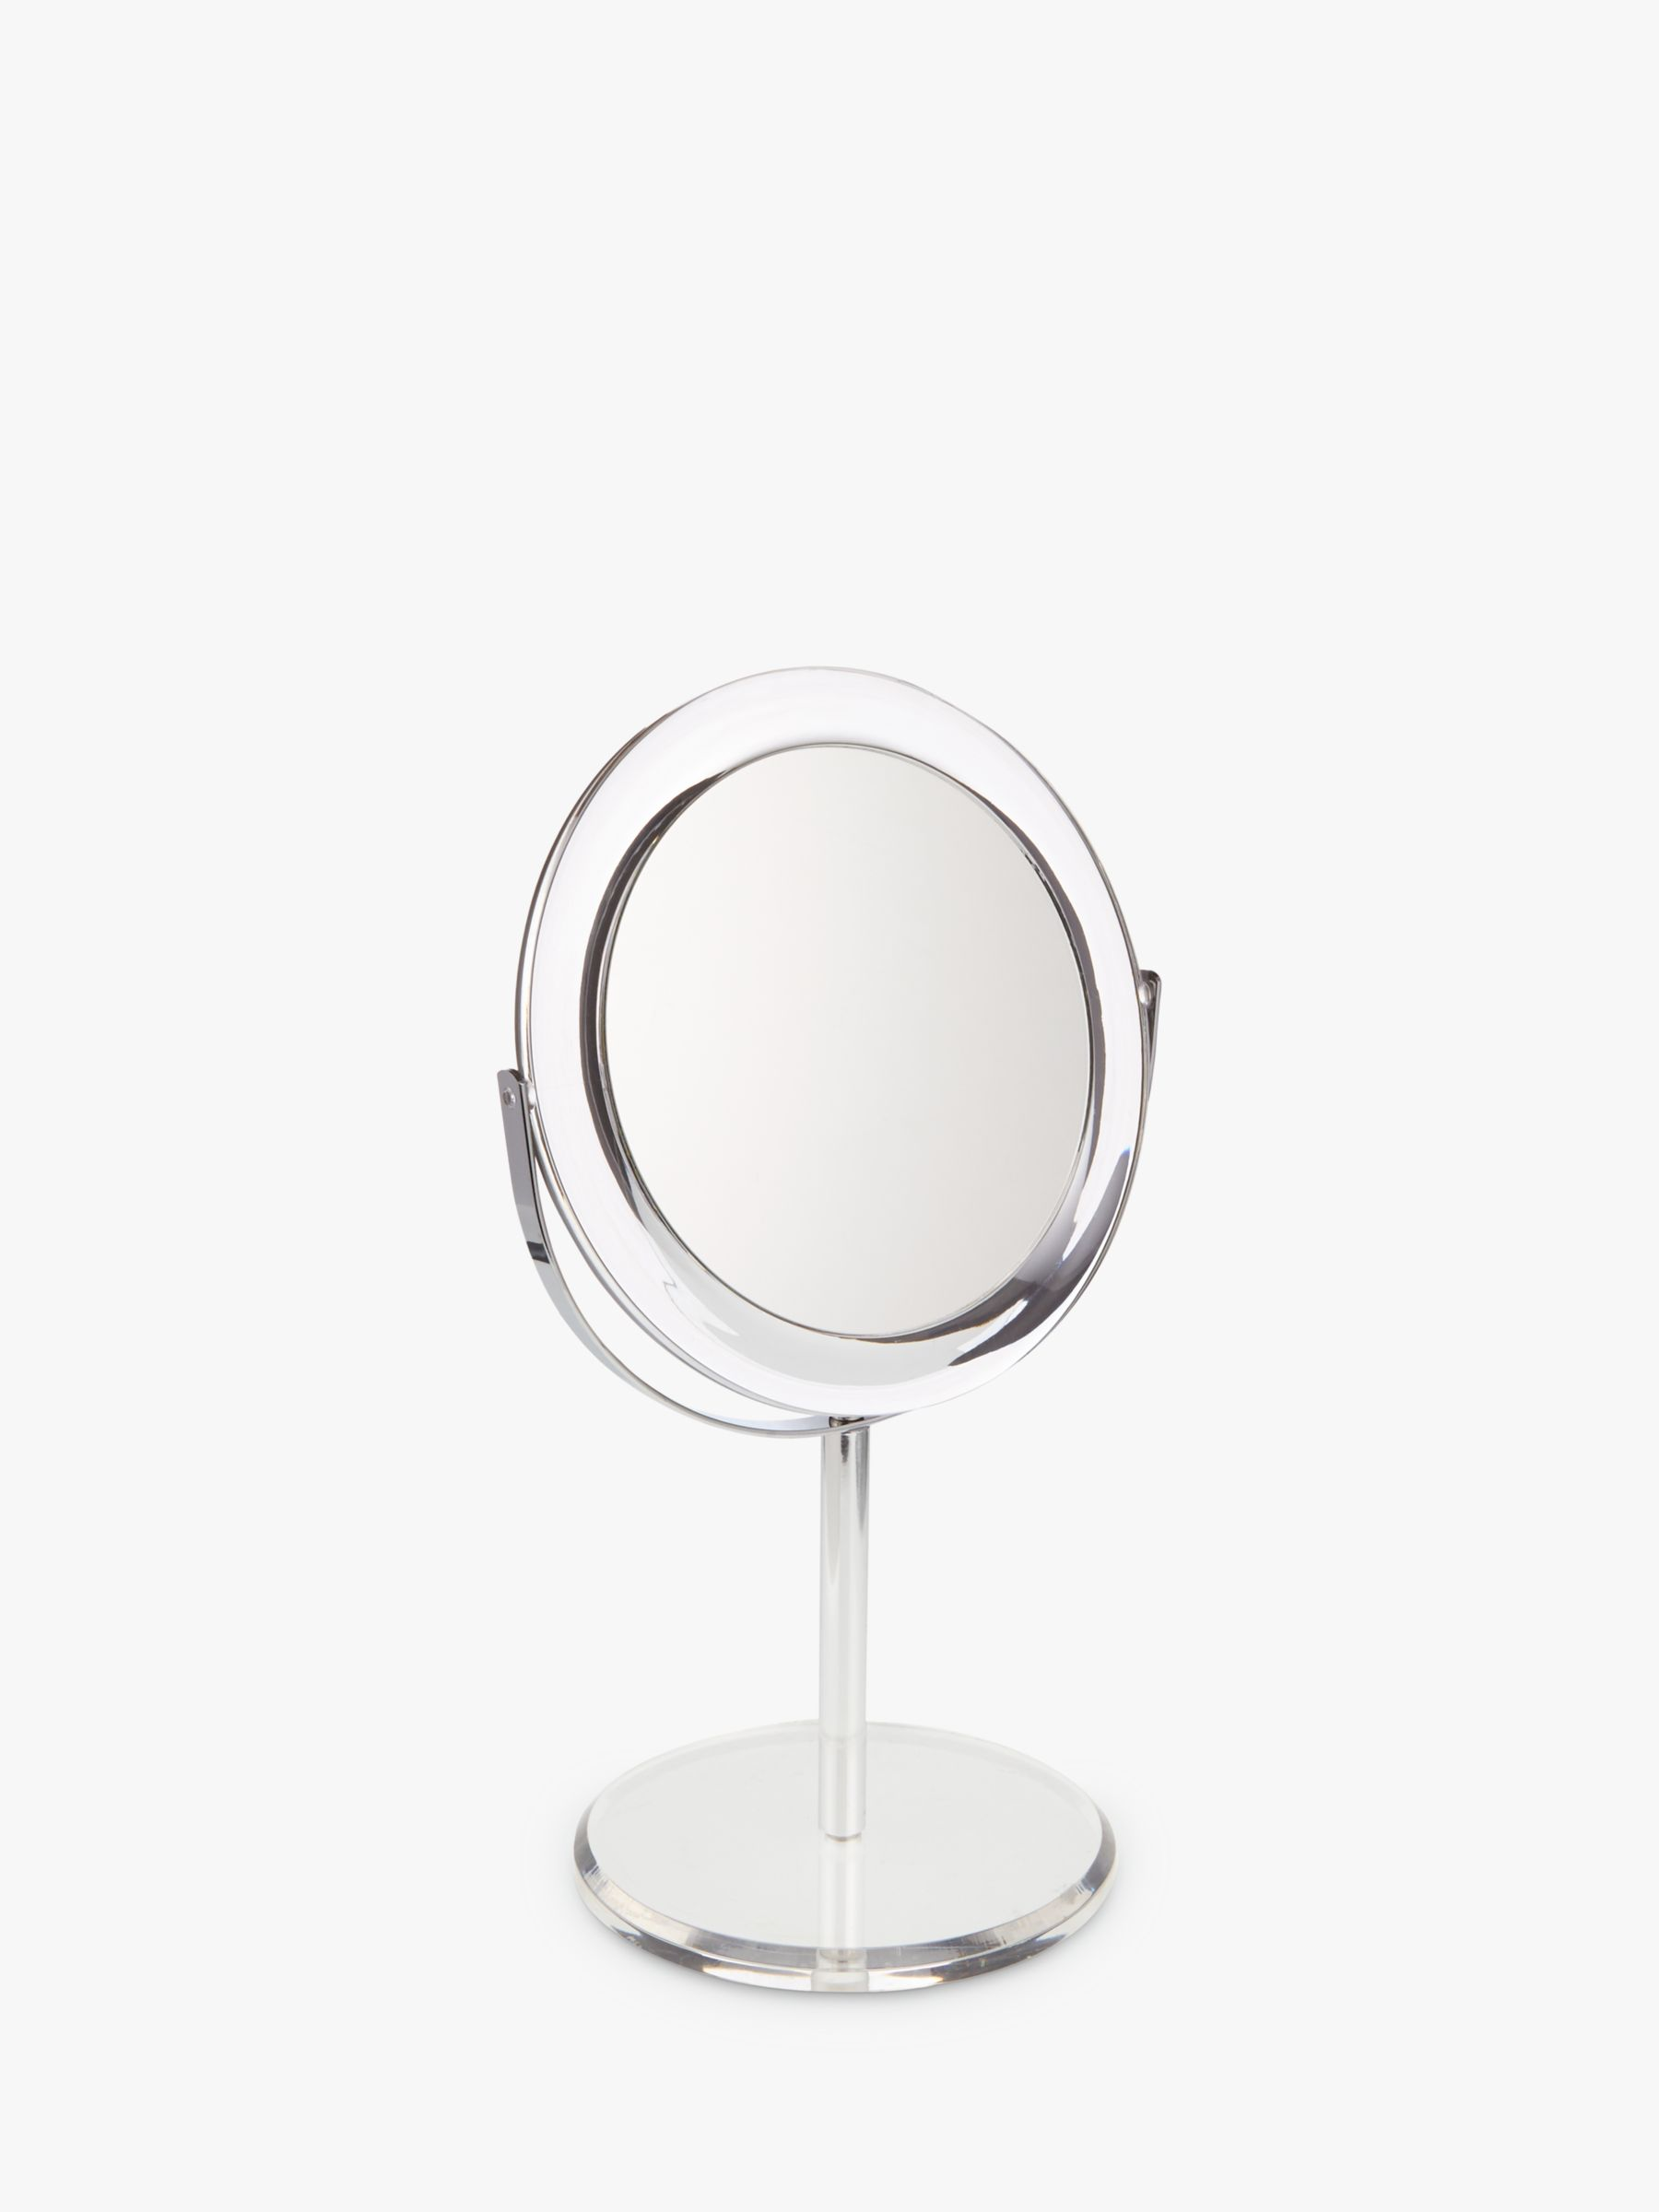 ANYDAY John Lewis & Partners Clear Round Acrylic 3 x Magnifying Mirror